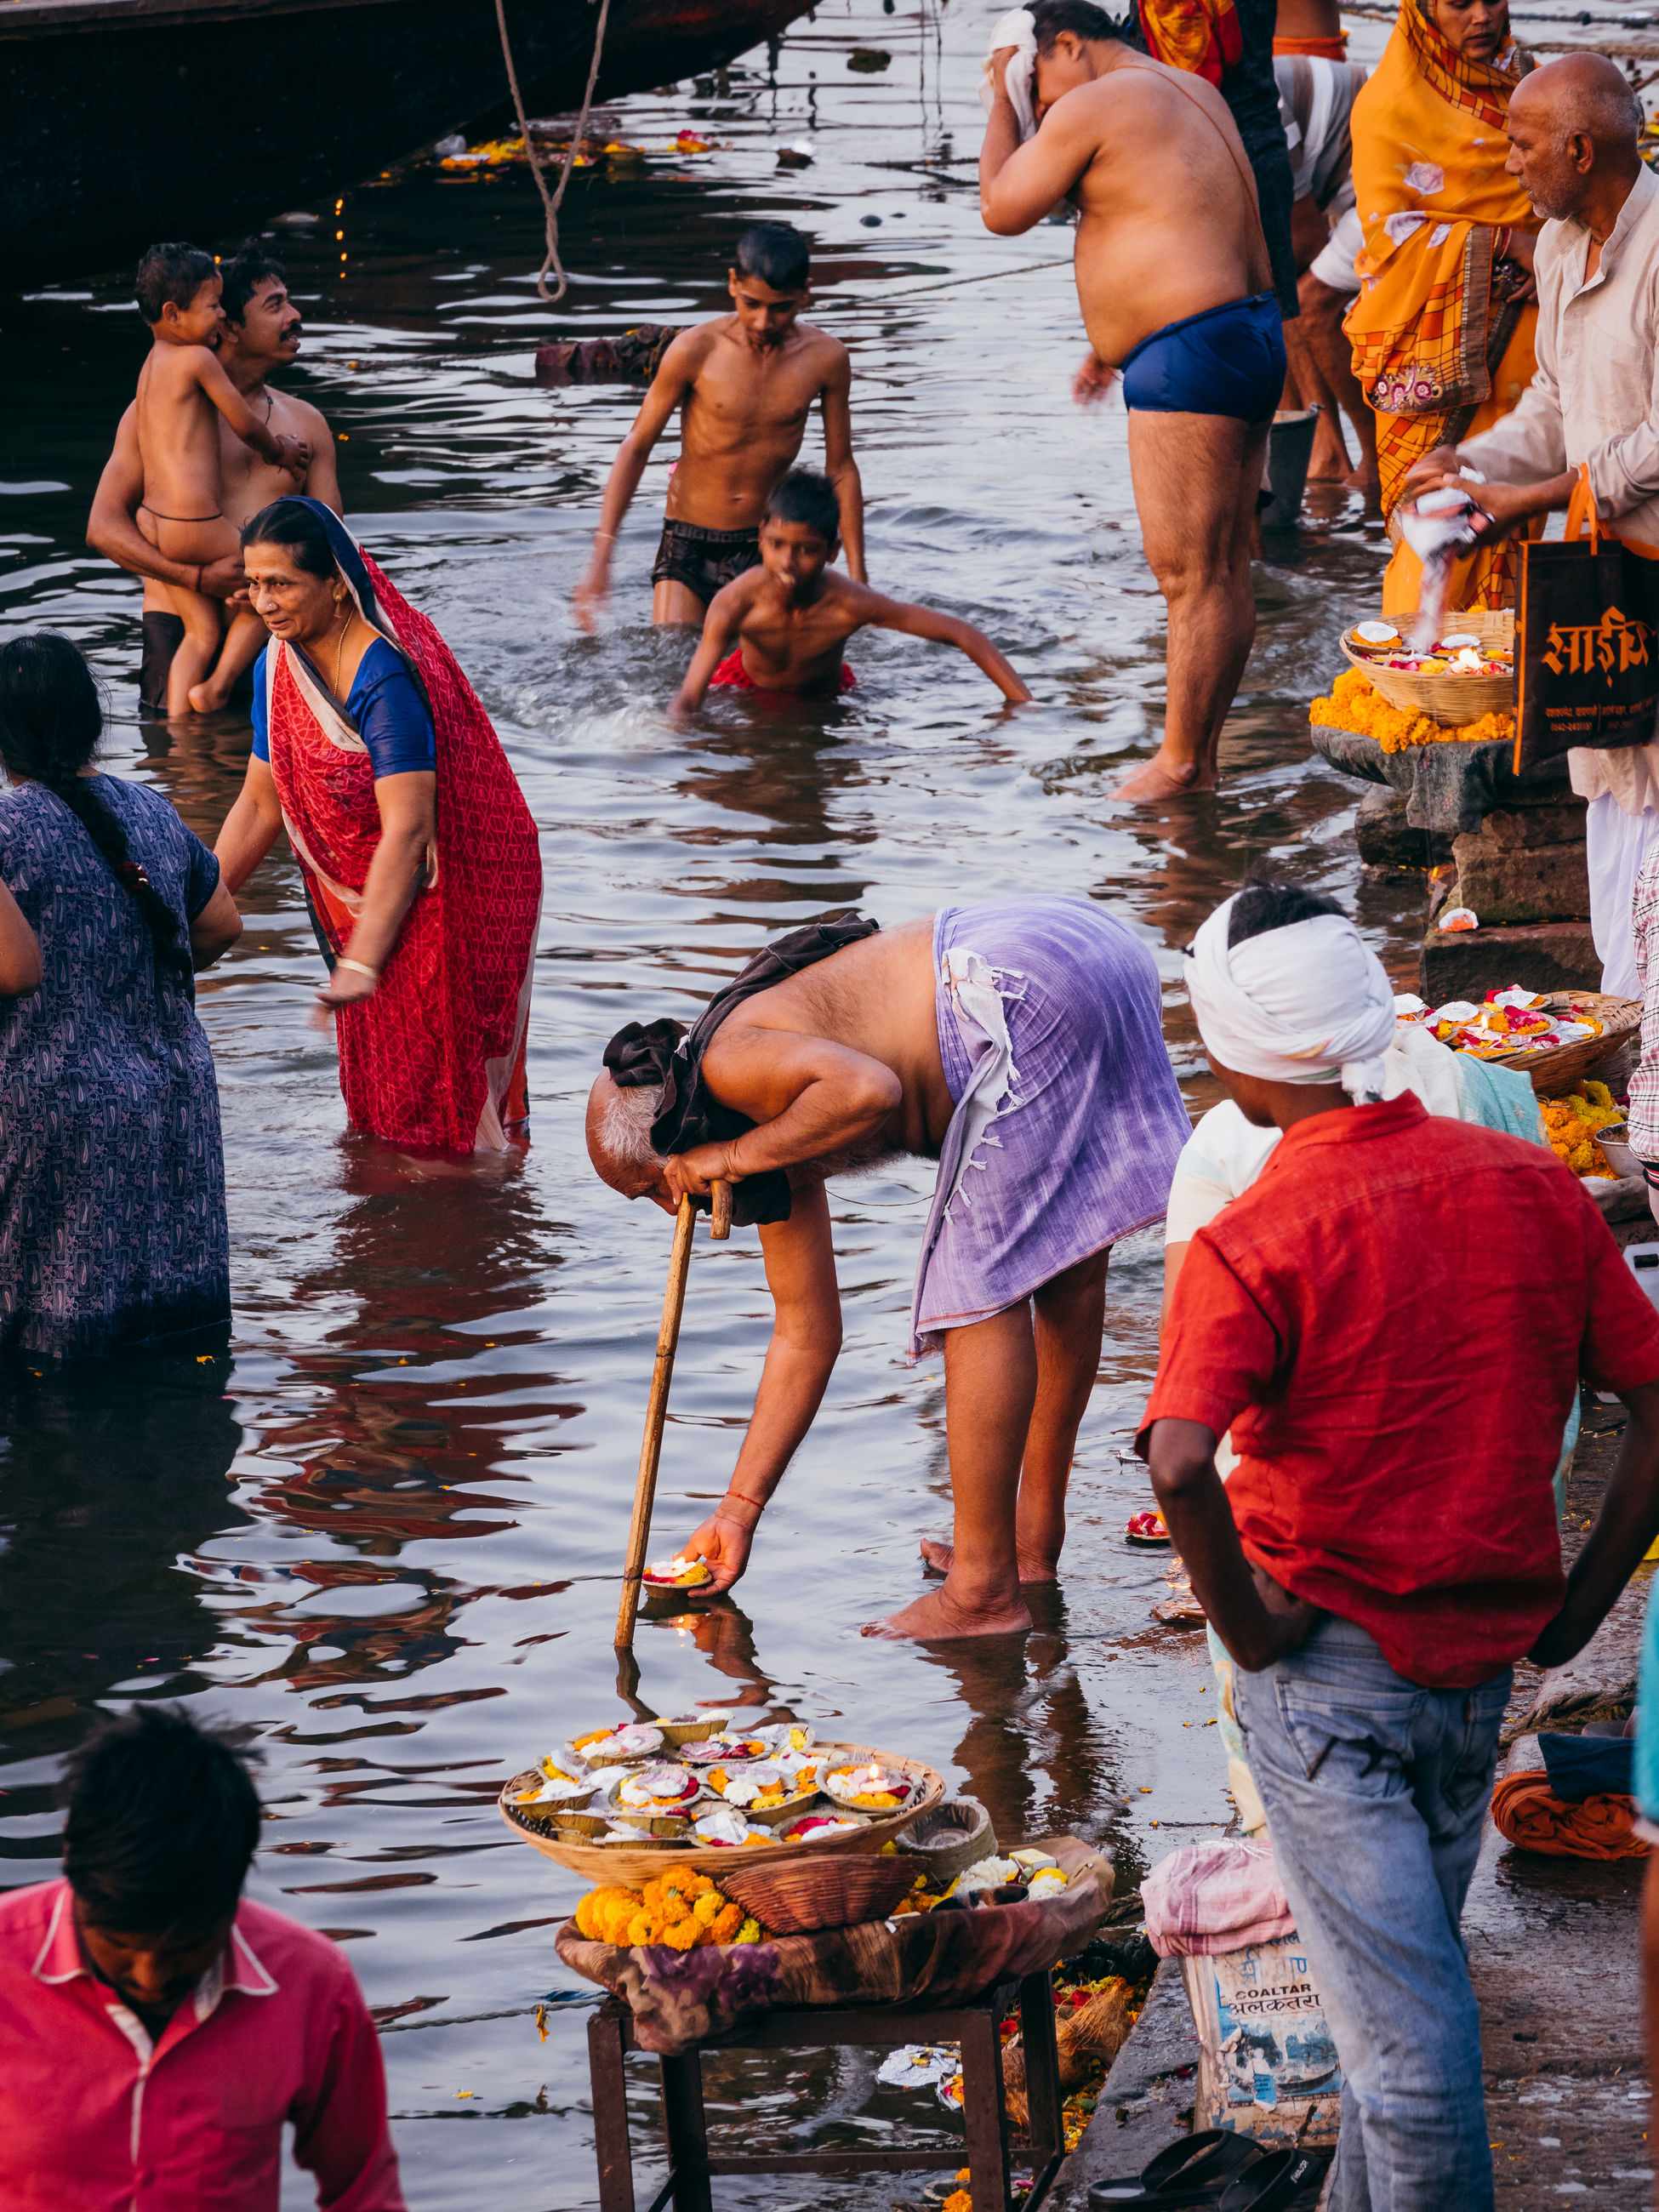 group of people, real people, water, large group of people, men, day, crowd, women, occupation, lifestyles, retail, food, market, outdoors, adult, belief, casual clothing, religion